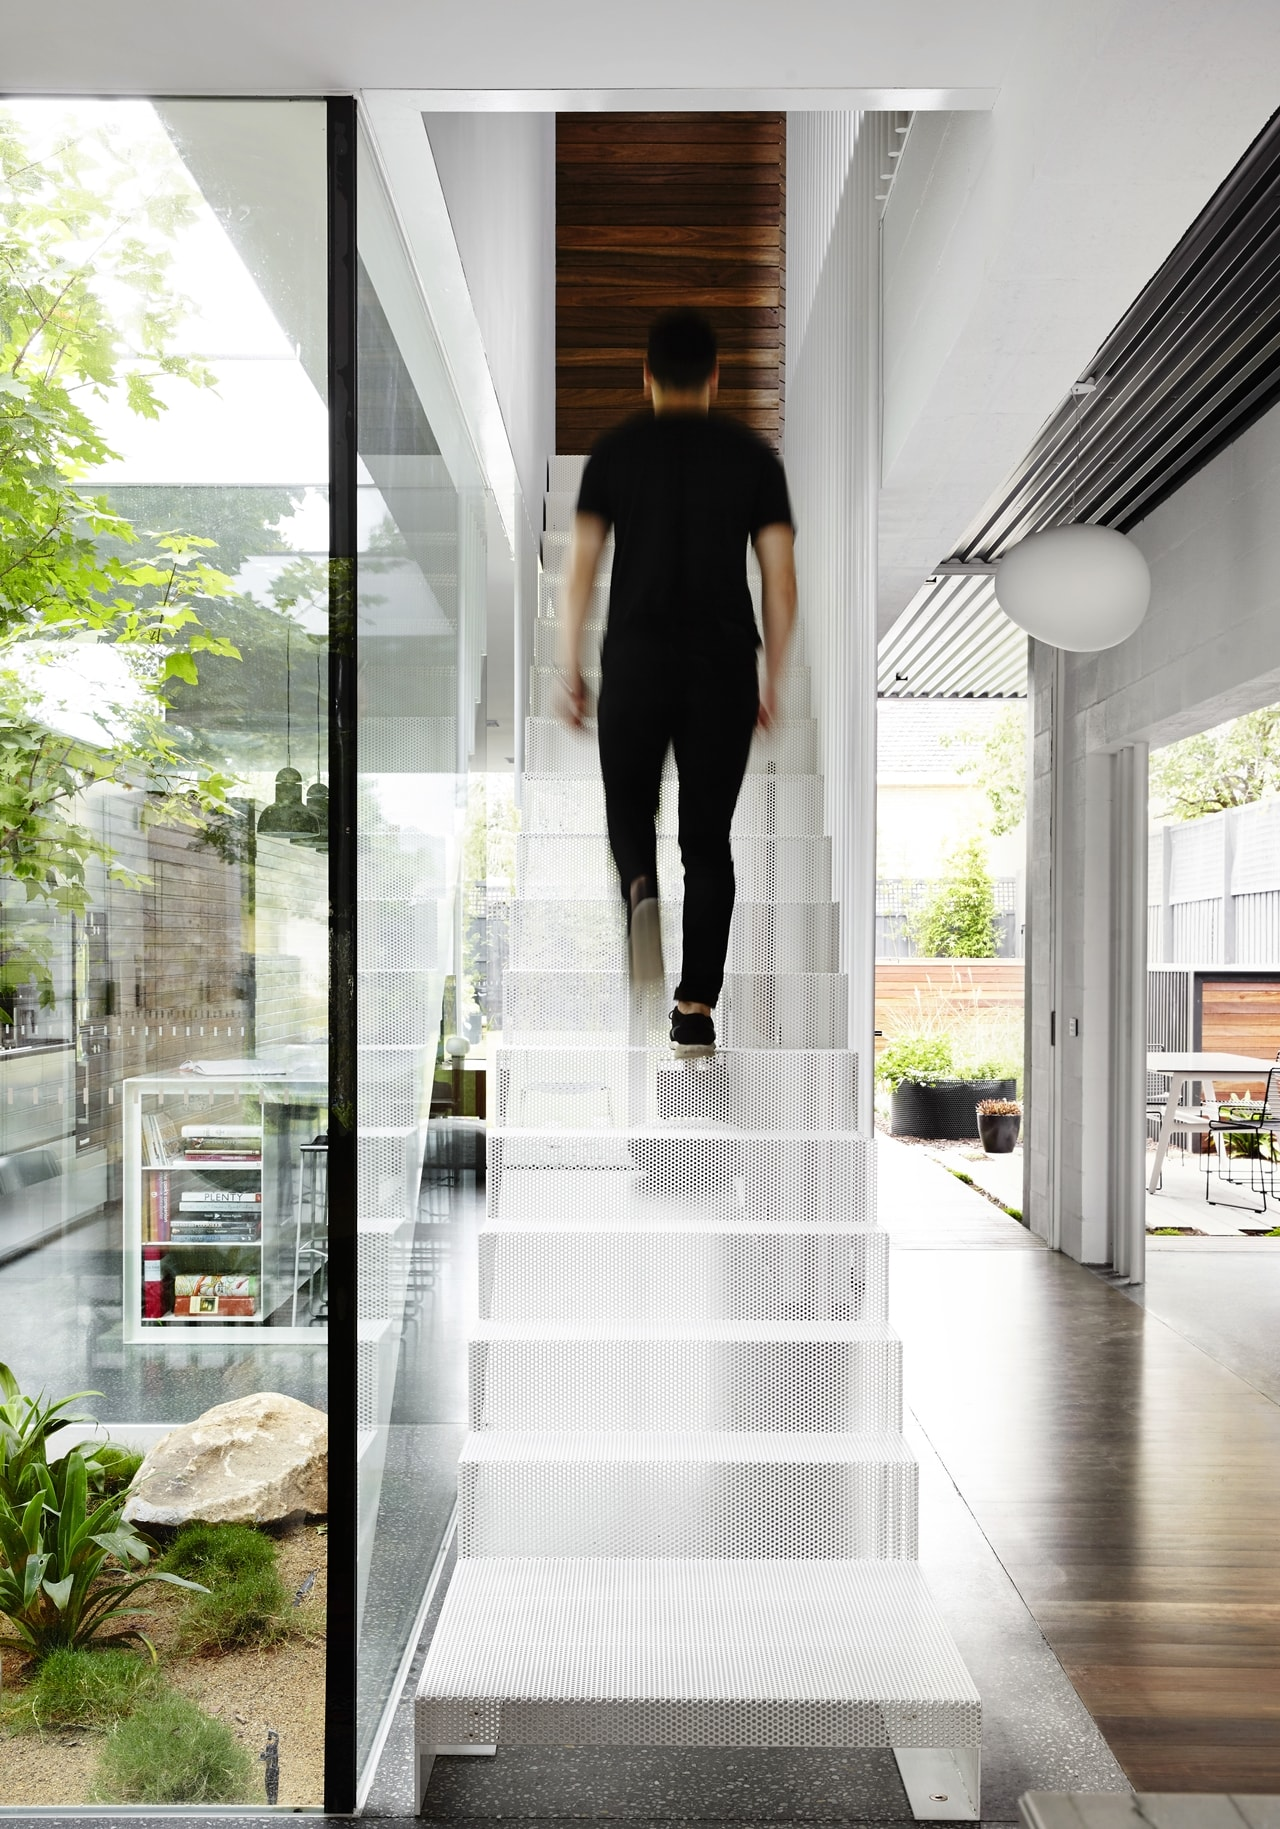 Narrow staircase by Austin Maynard Architects